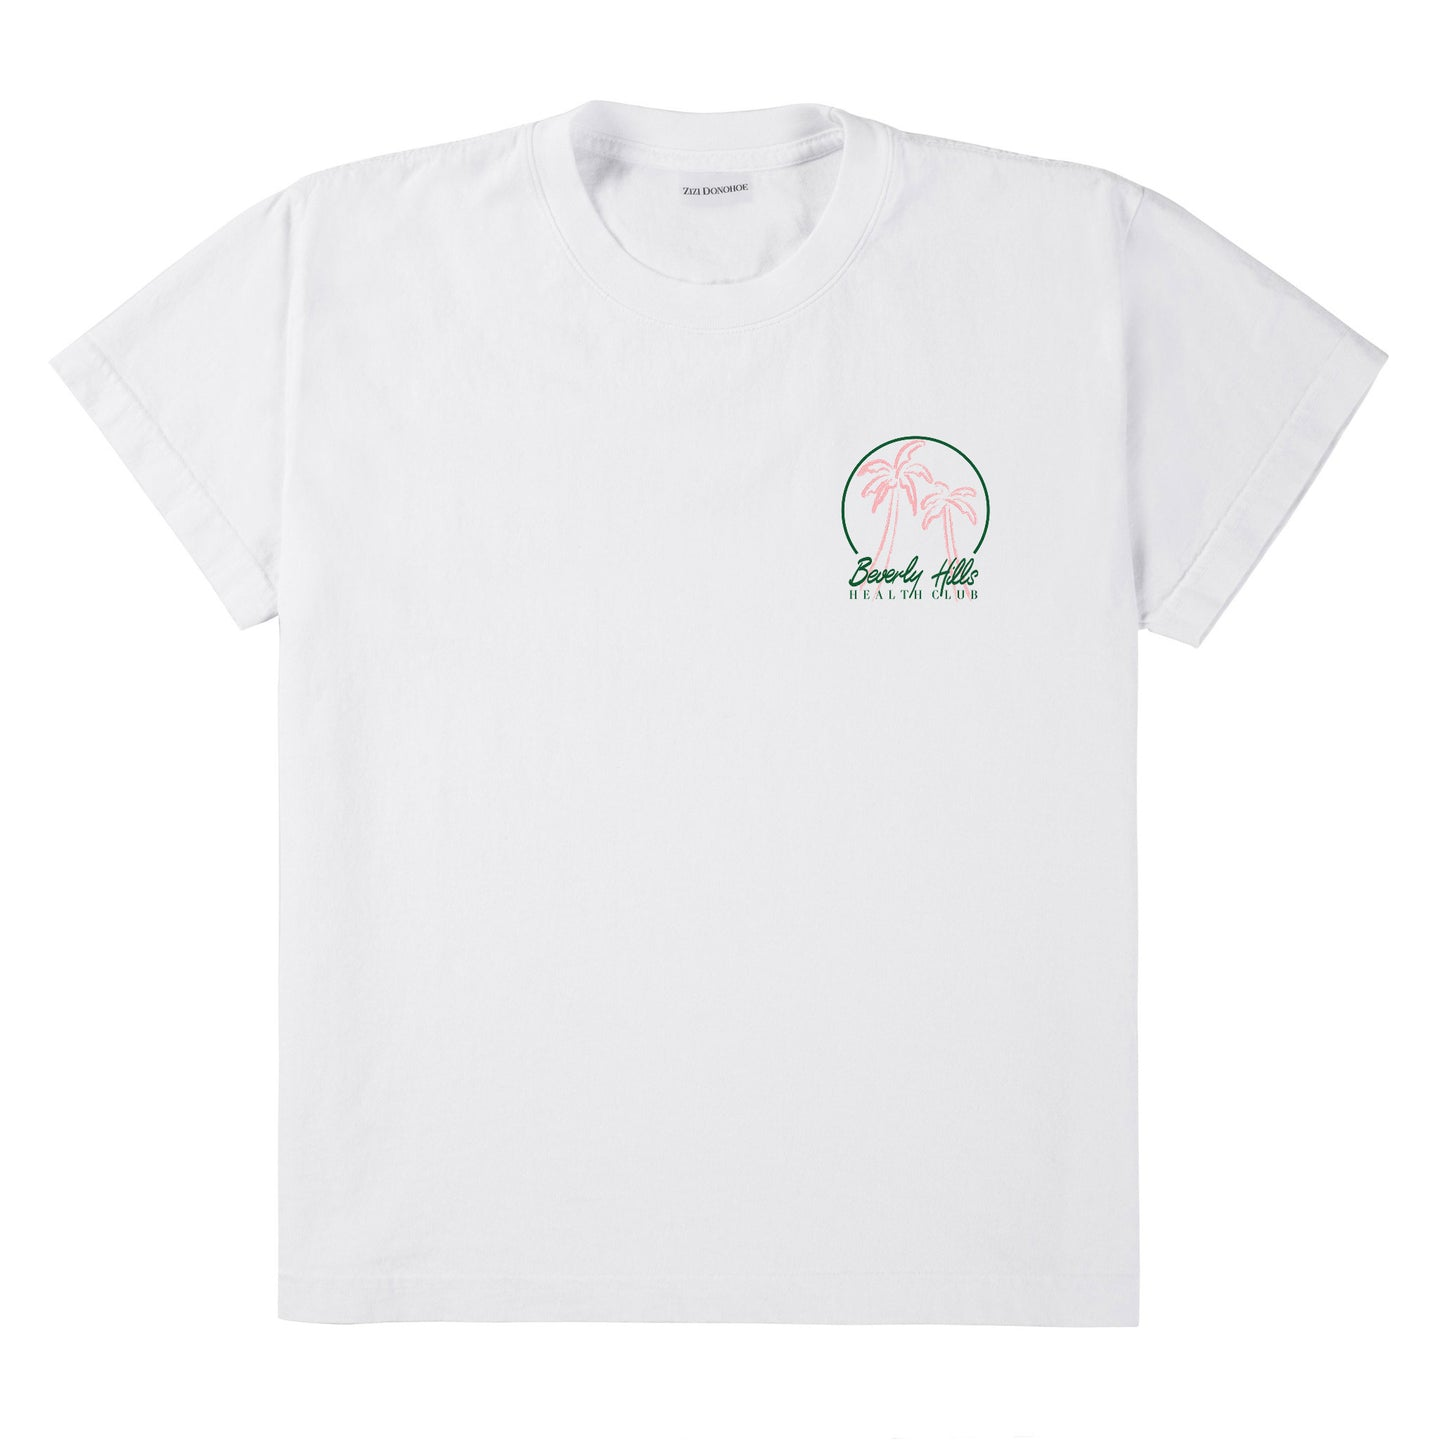 Beverly Hills Health Club T-shirt